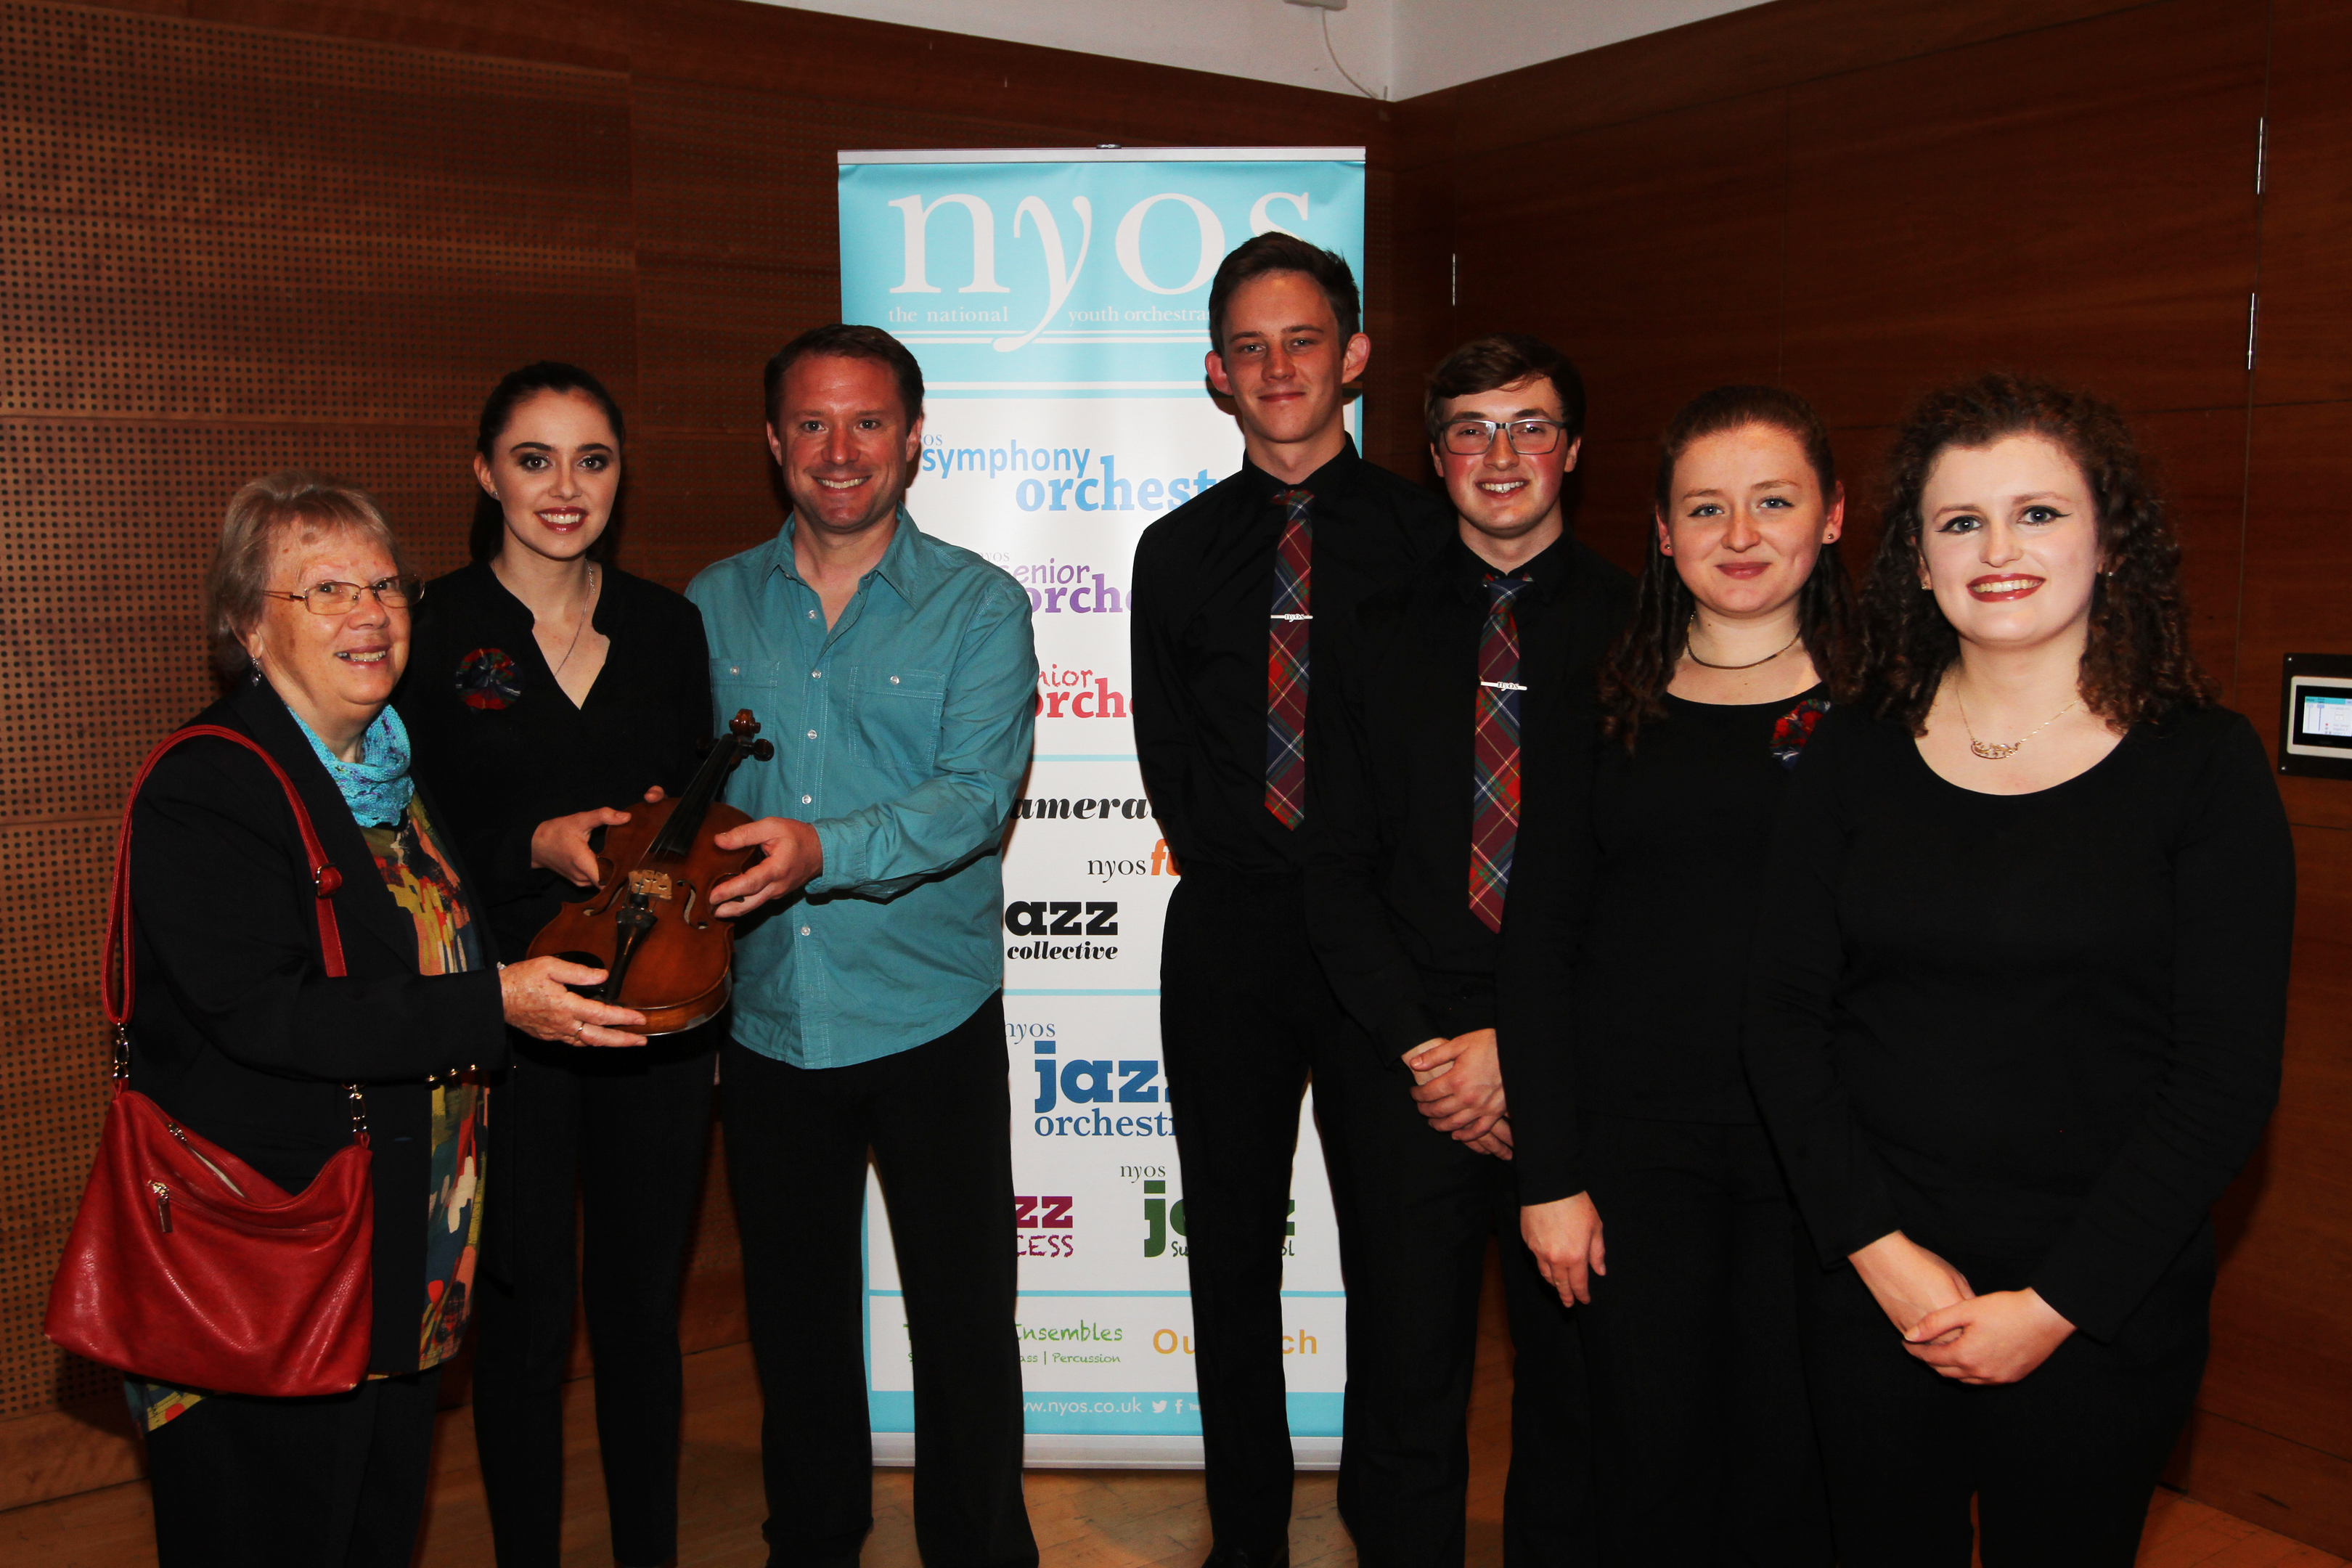 Elizabeth Currie, leader of NYOS Iona McDonald, Percussionist Colin Currie and members of NYOS, Ethan Skuodas, 19, Fraser Sharp, 20, Lauren O'Malley, 19 and Paula O'Malley, 20.